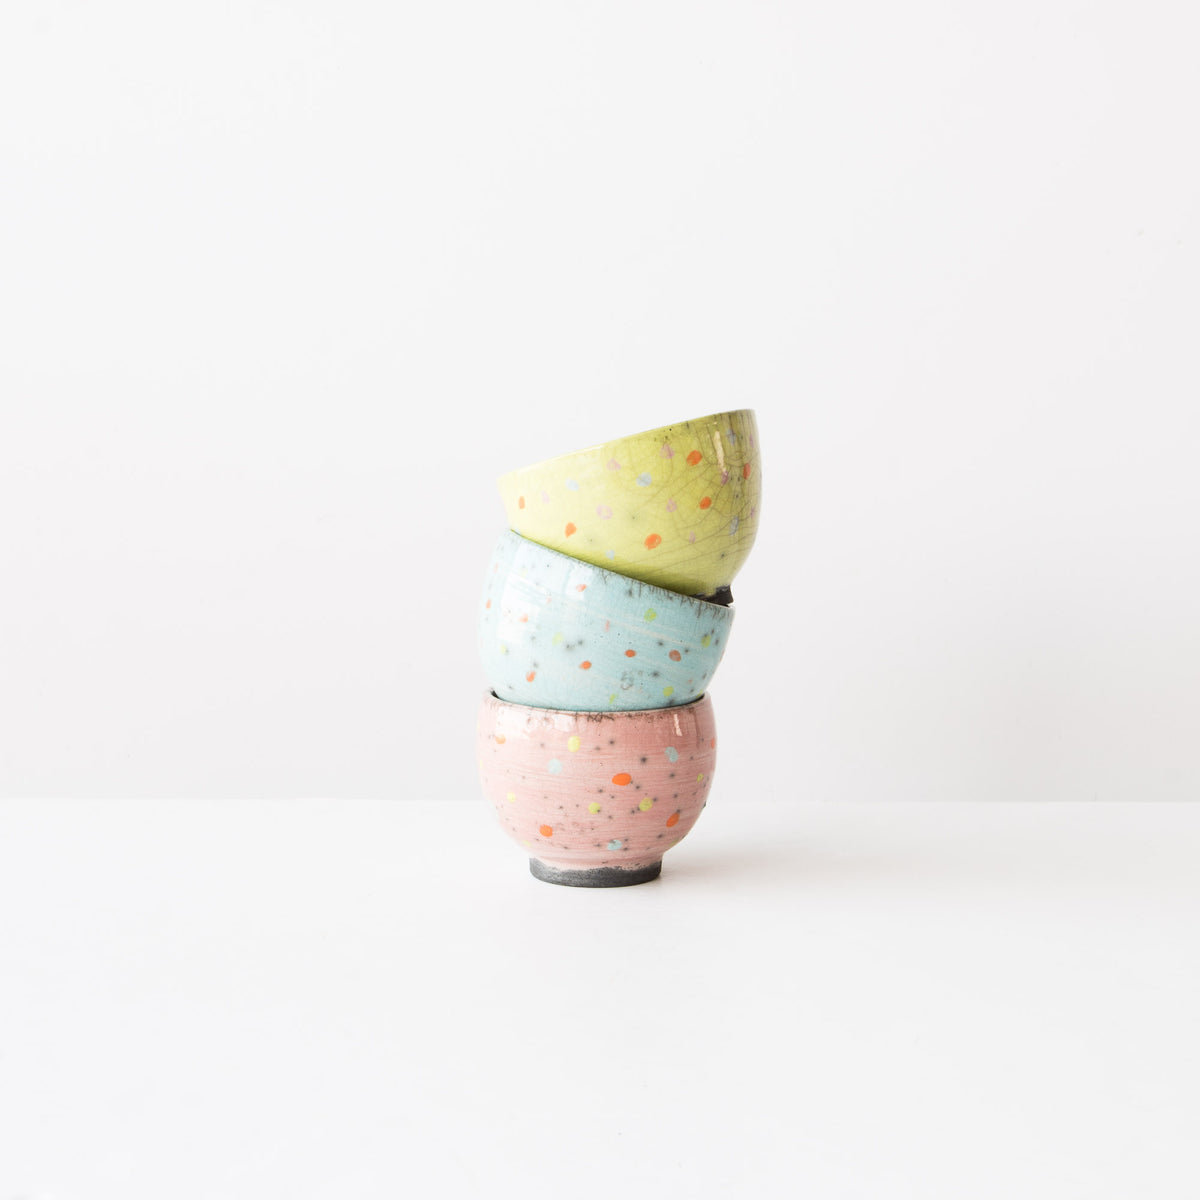 Set of 3 Lime, Pink & Turquoise Multicolored Polkadots Raku Bowls. - Sold by Chic & Basta